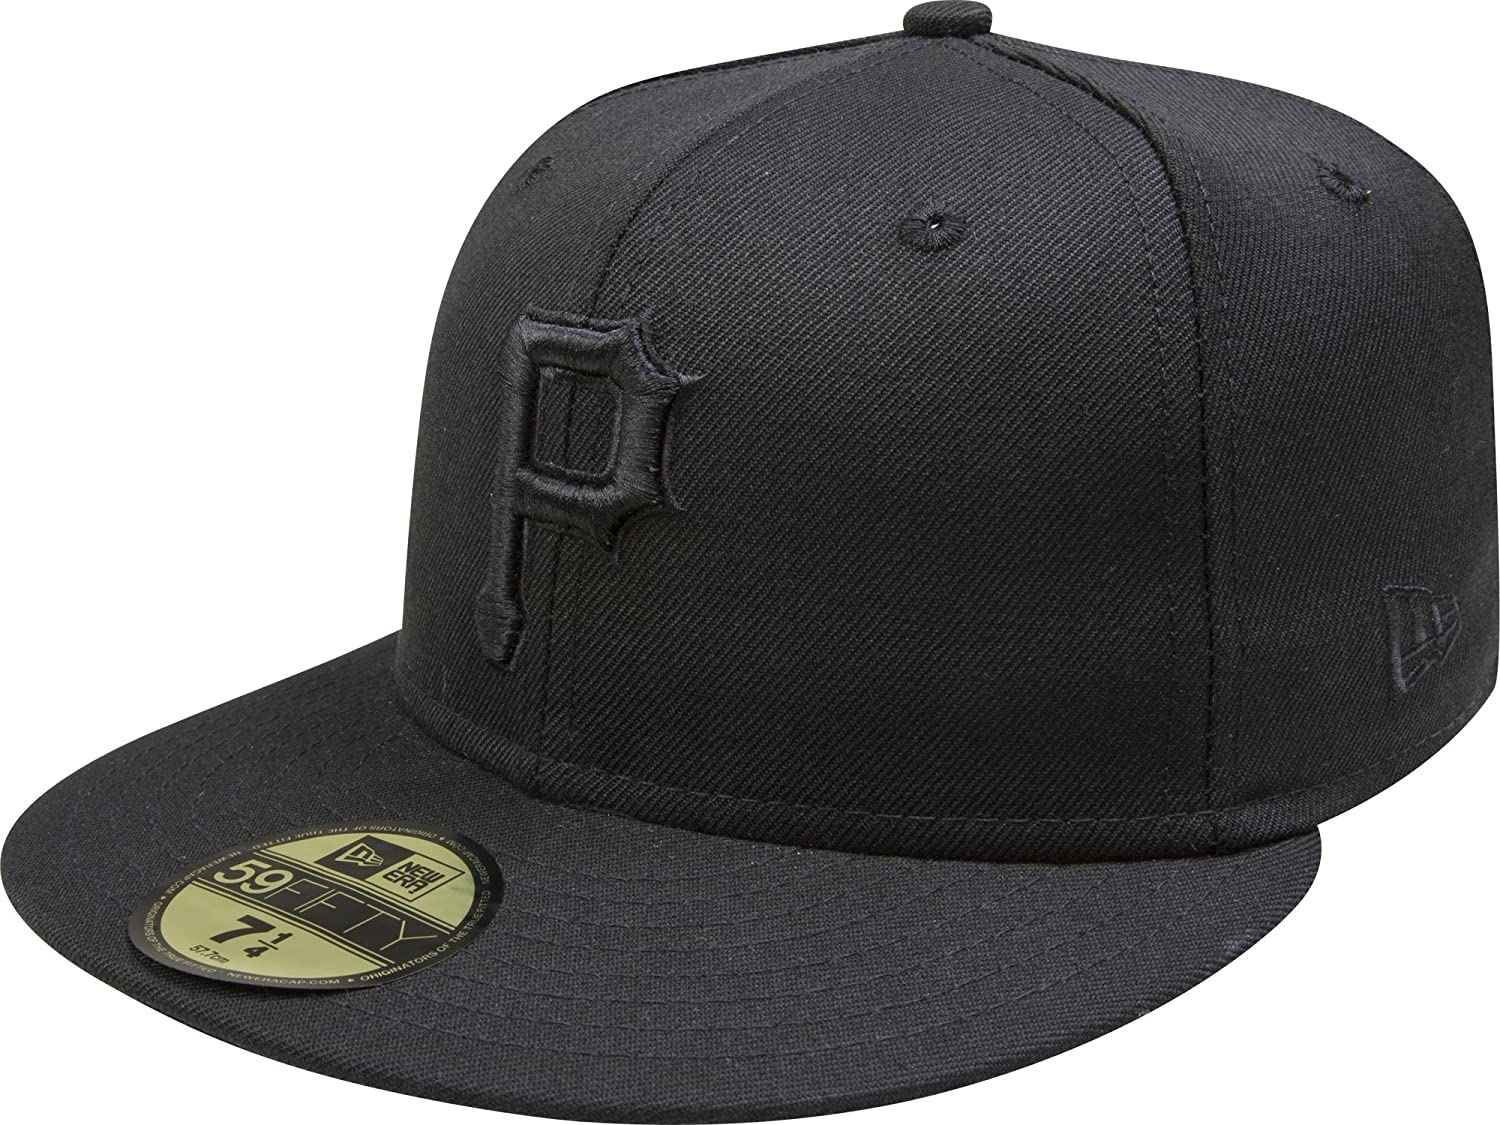 detailed look db072 306b6 Amazon.com   New Era 59Fifty Pittsburgh Pirates Blackout Fitted Hat (Black  Black) Men s Cap   Clothing